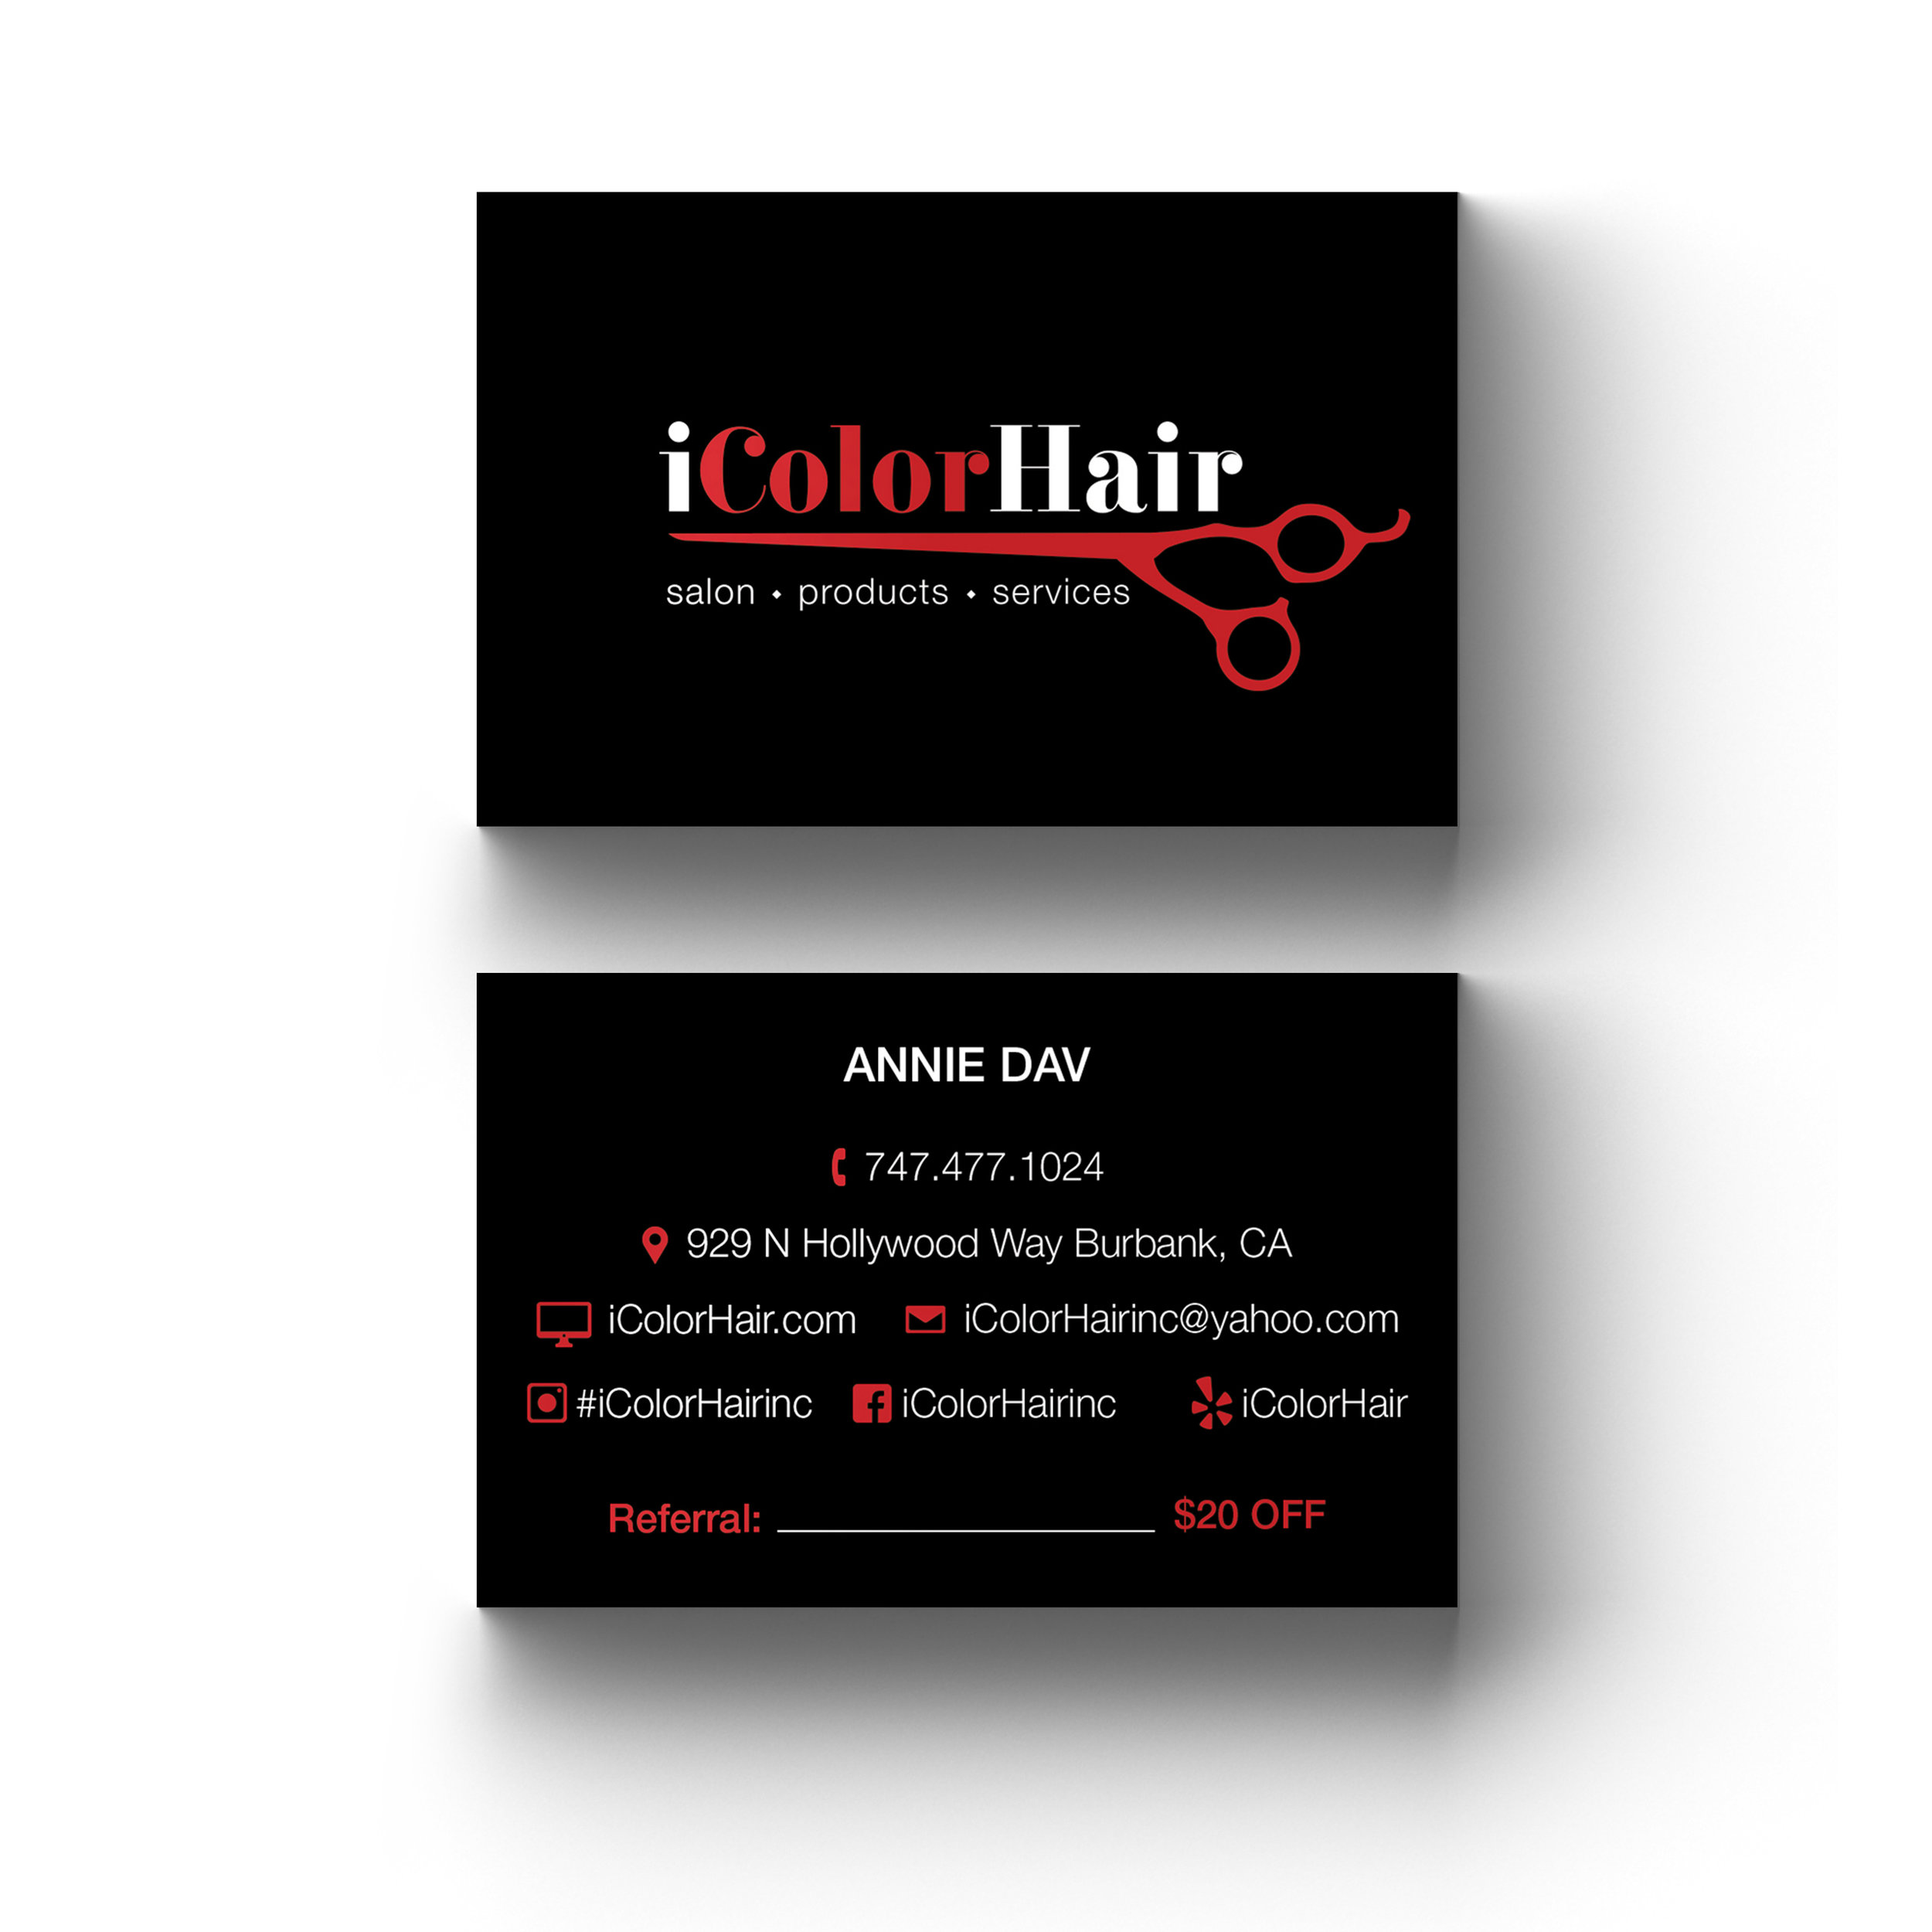 iColorHair Business Cards